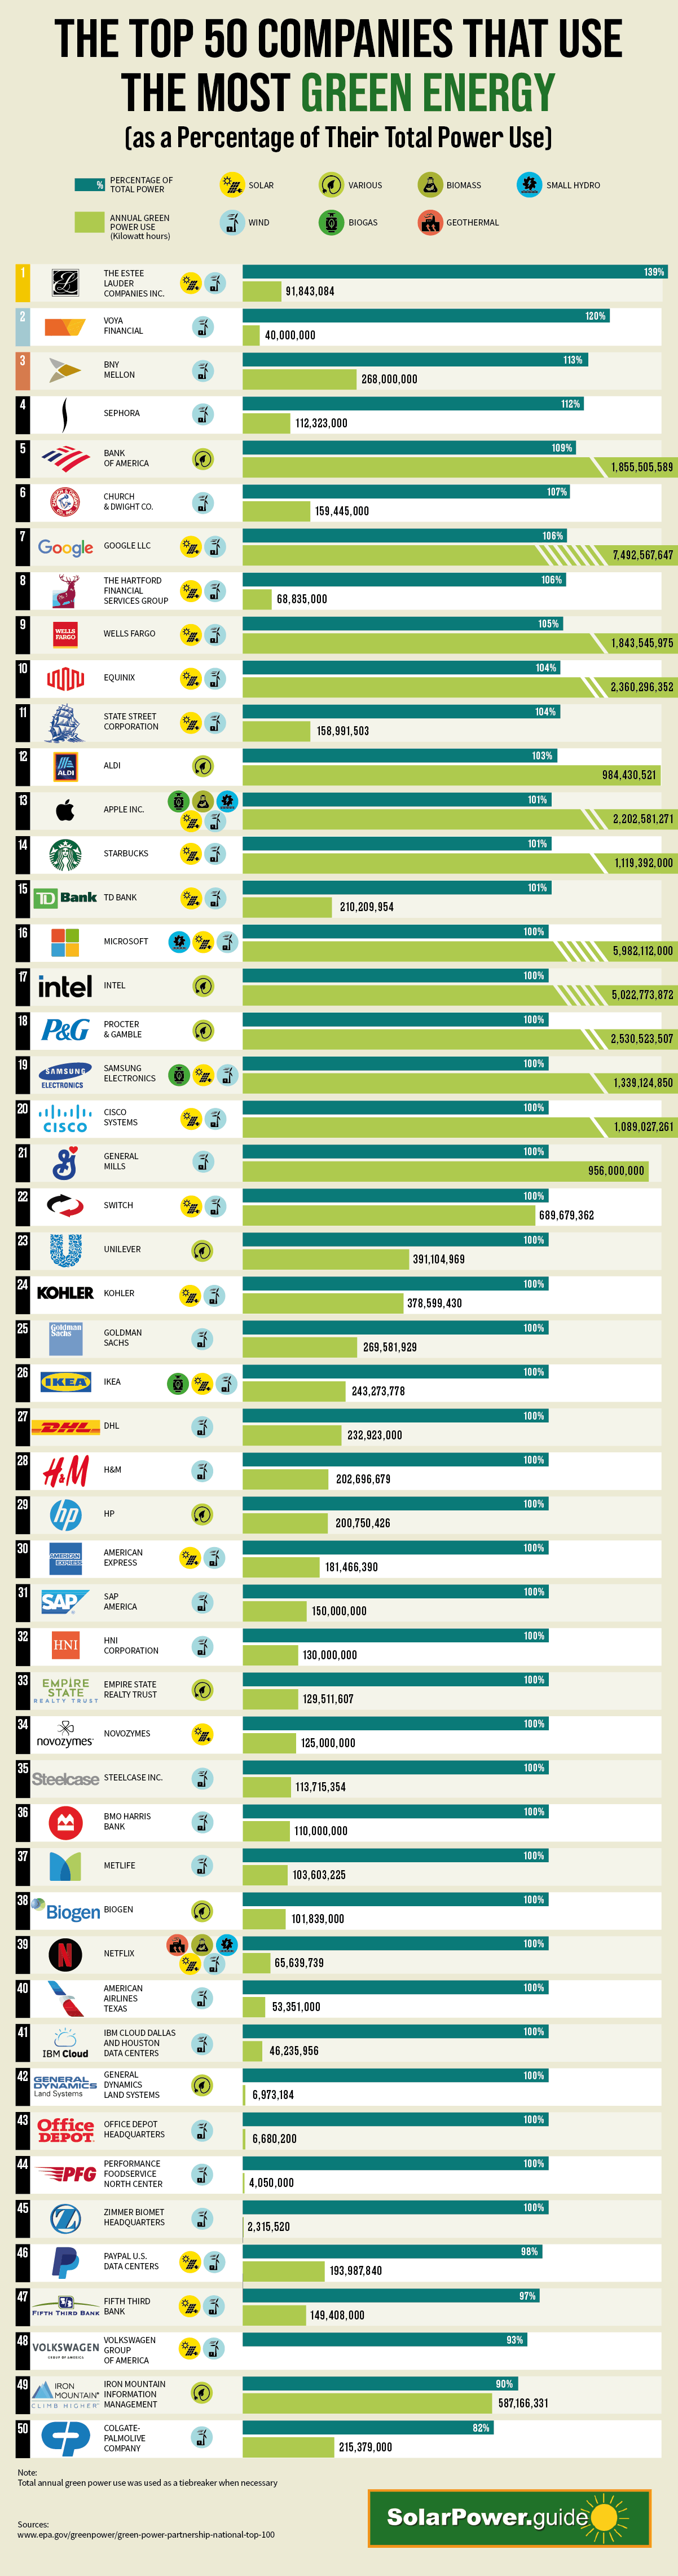 Which Companies Use the Most Green Energy